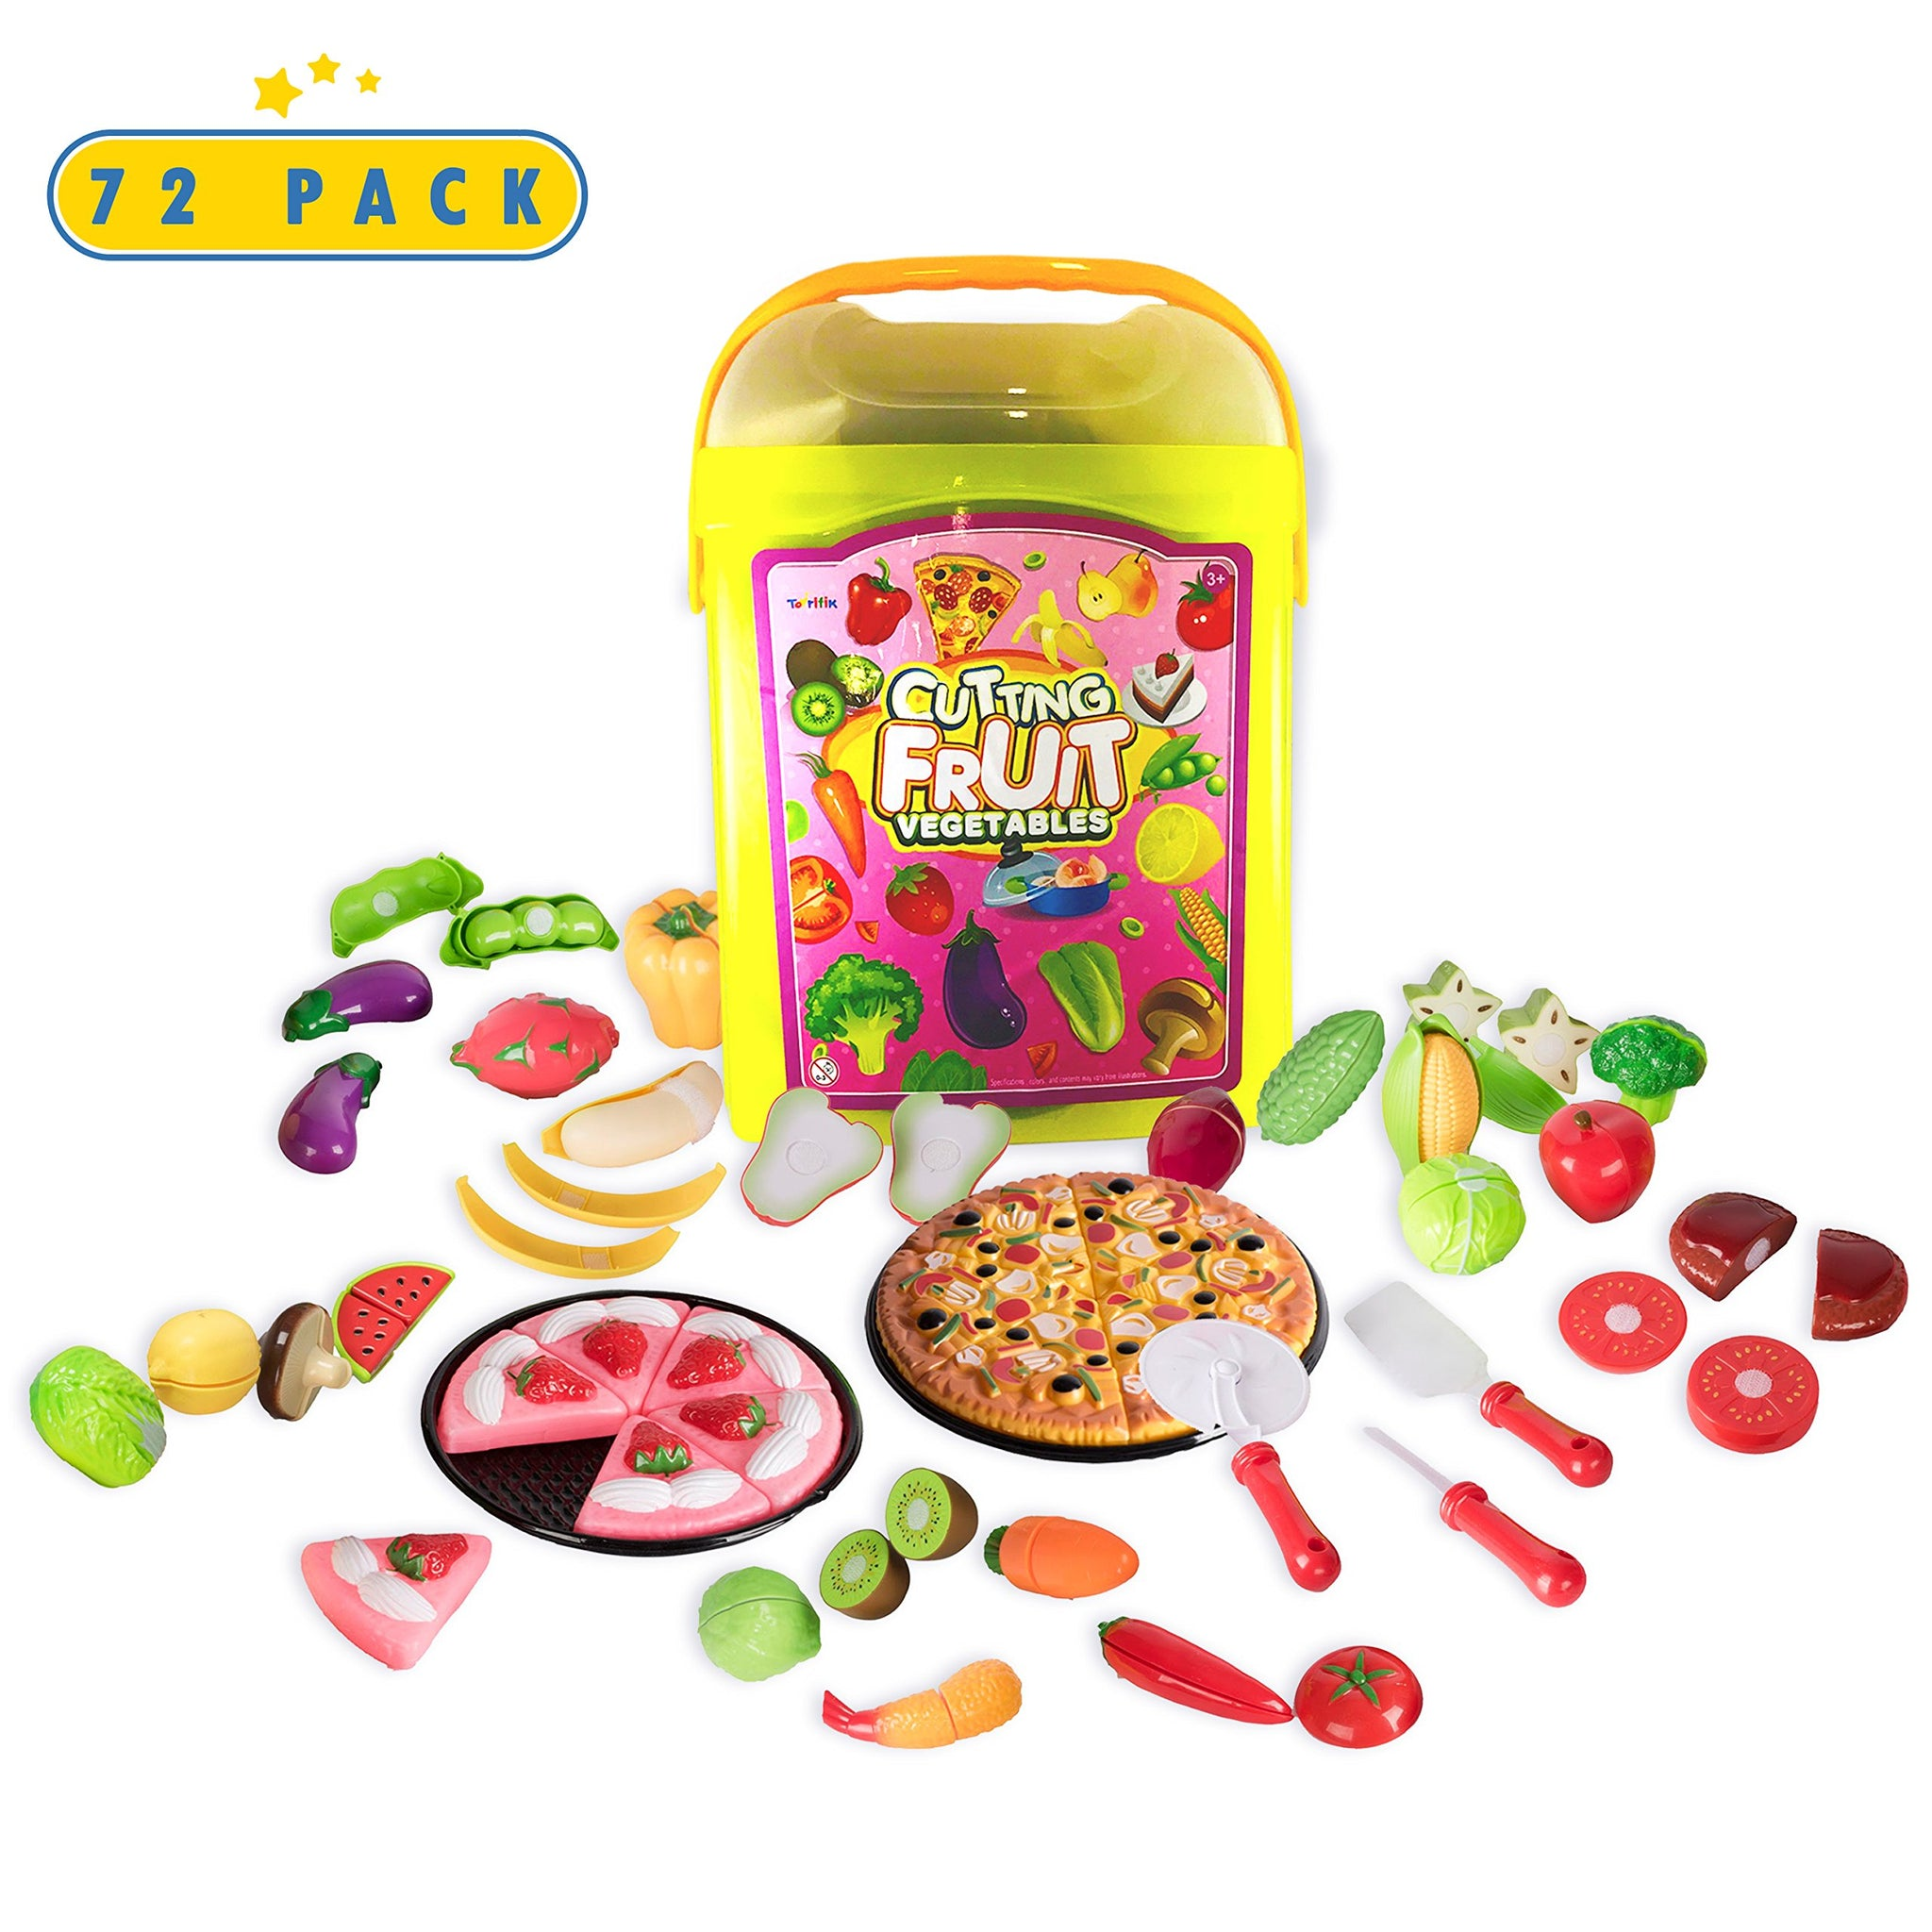 Play Food Kitchen Toys Set - 72 Piece Fake Fruits And Vegetables Toddler Cutting Play-Set